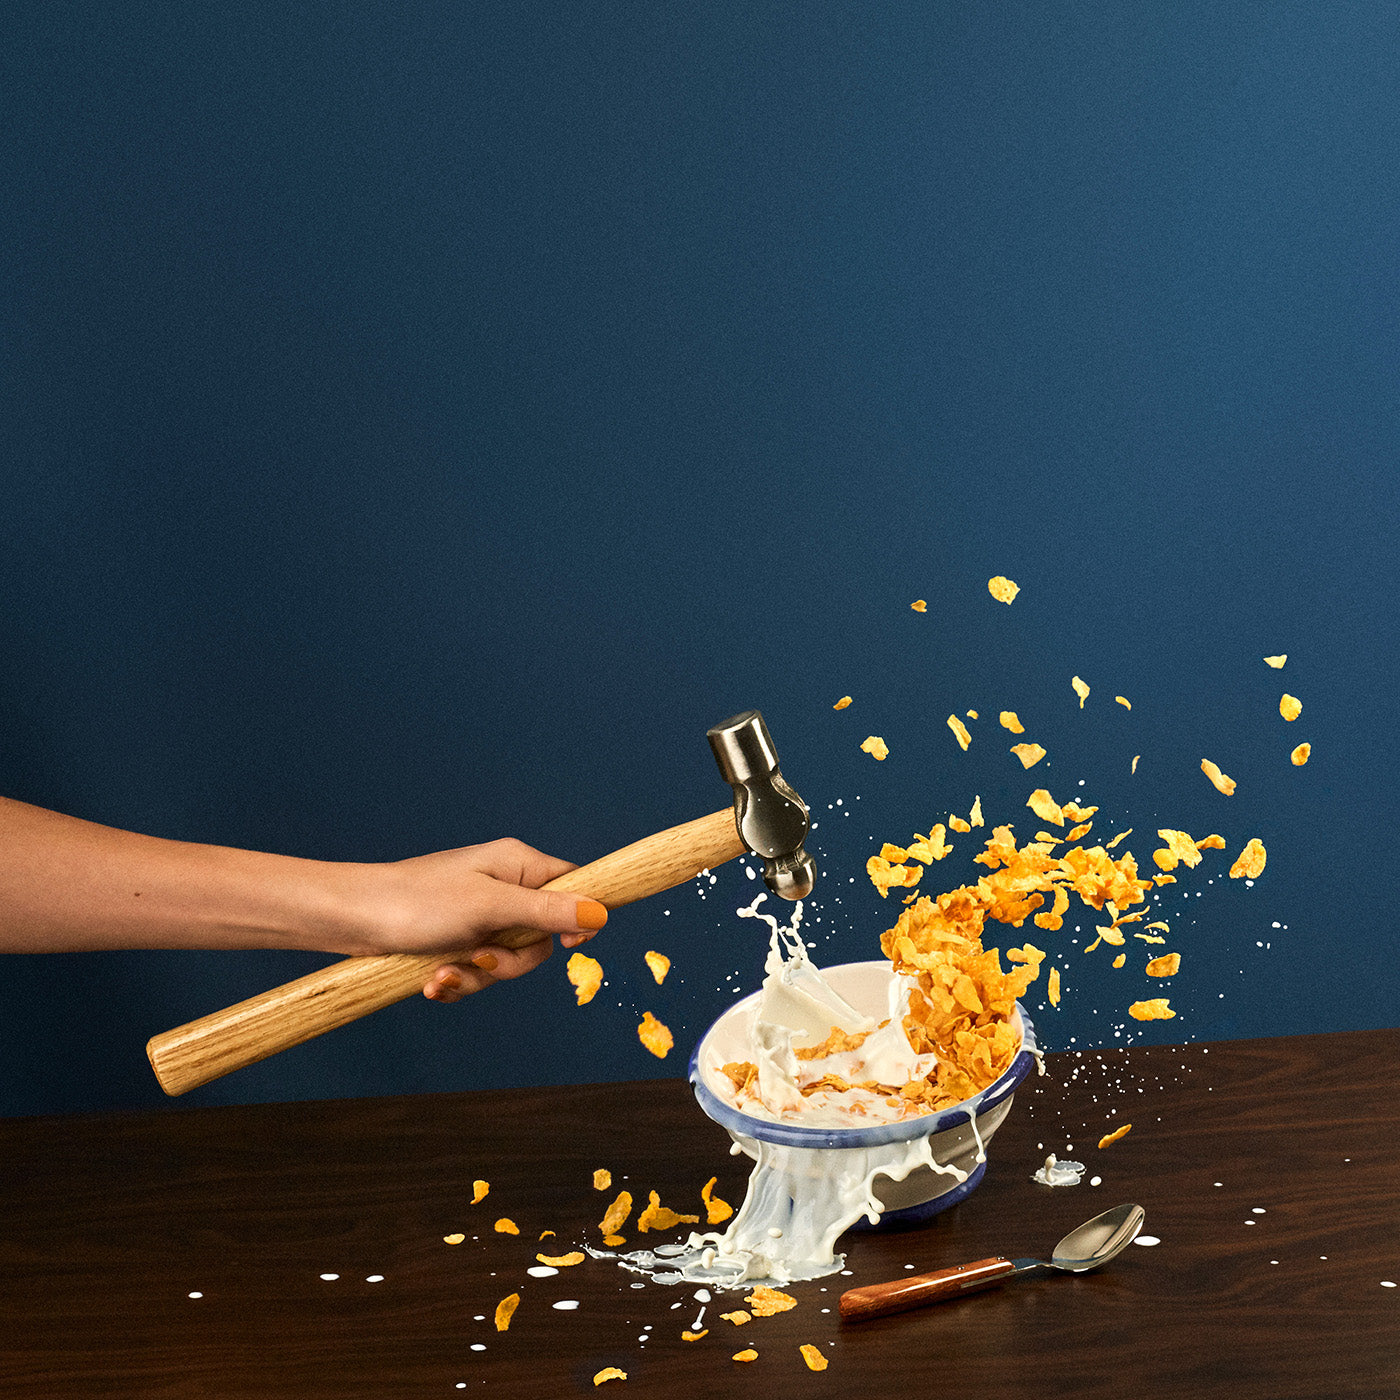 Smashing cereal. An image from Break/Fast by Fragmento Universo